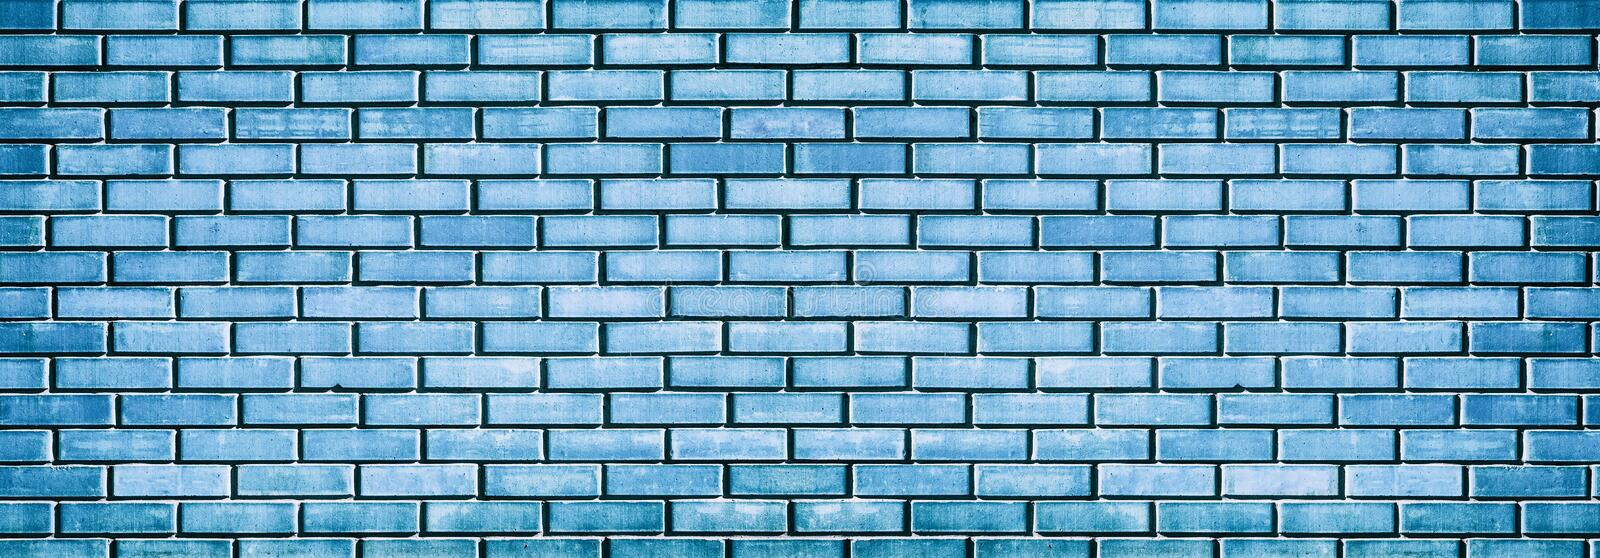 Grunge blue brick wall texture stock image